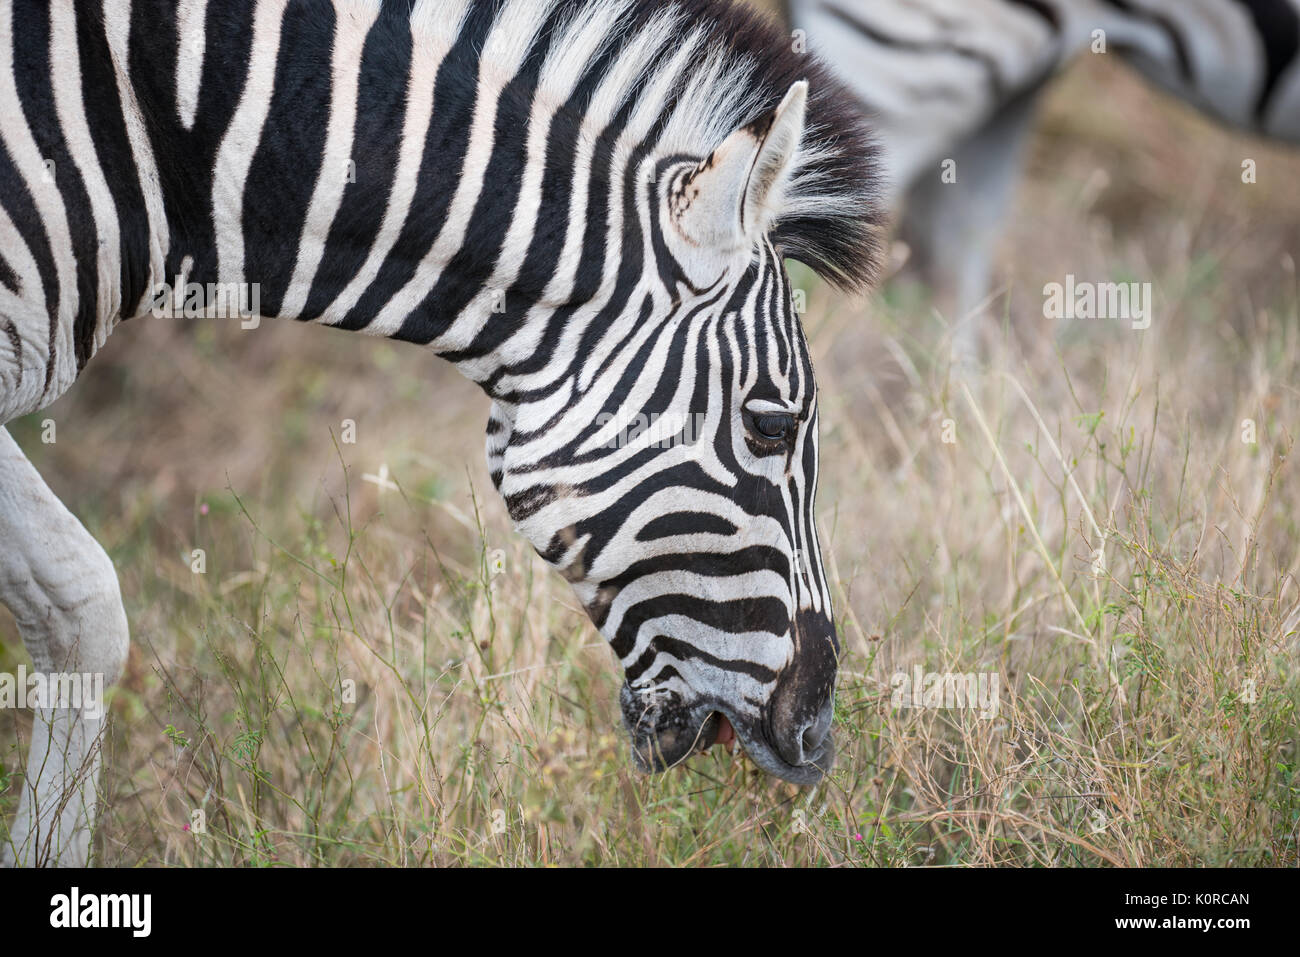 Burchell's zebra grazing in the Kruger National Park - Stock Image